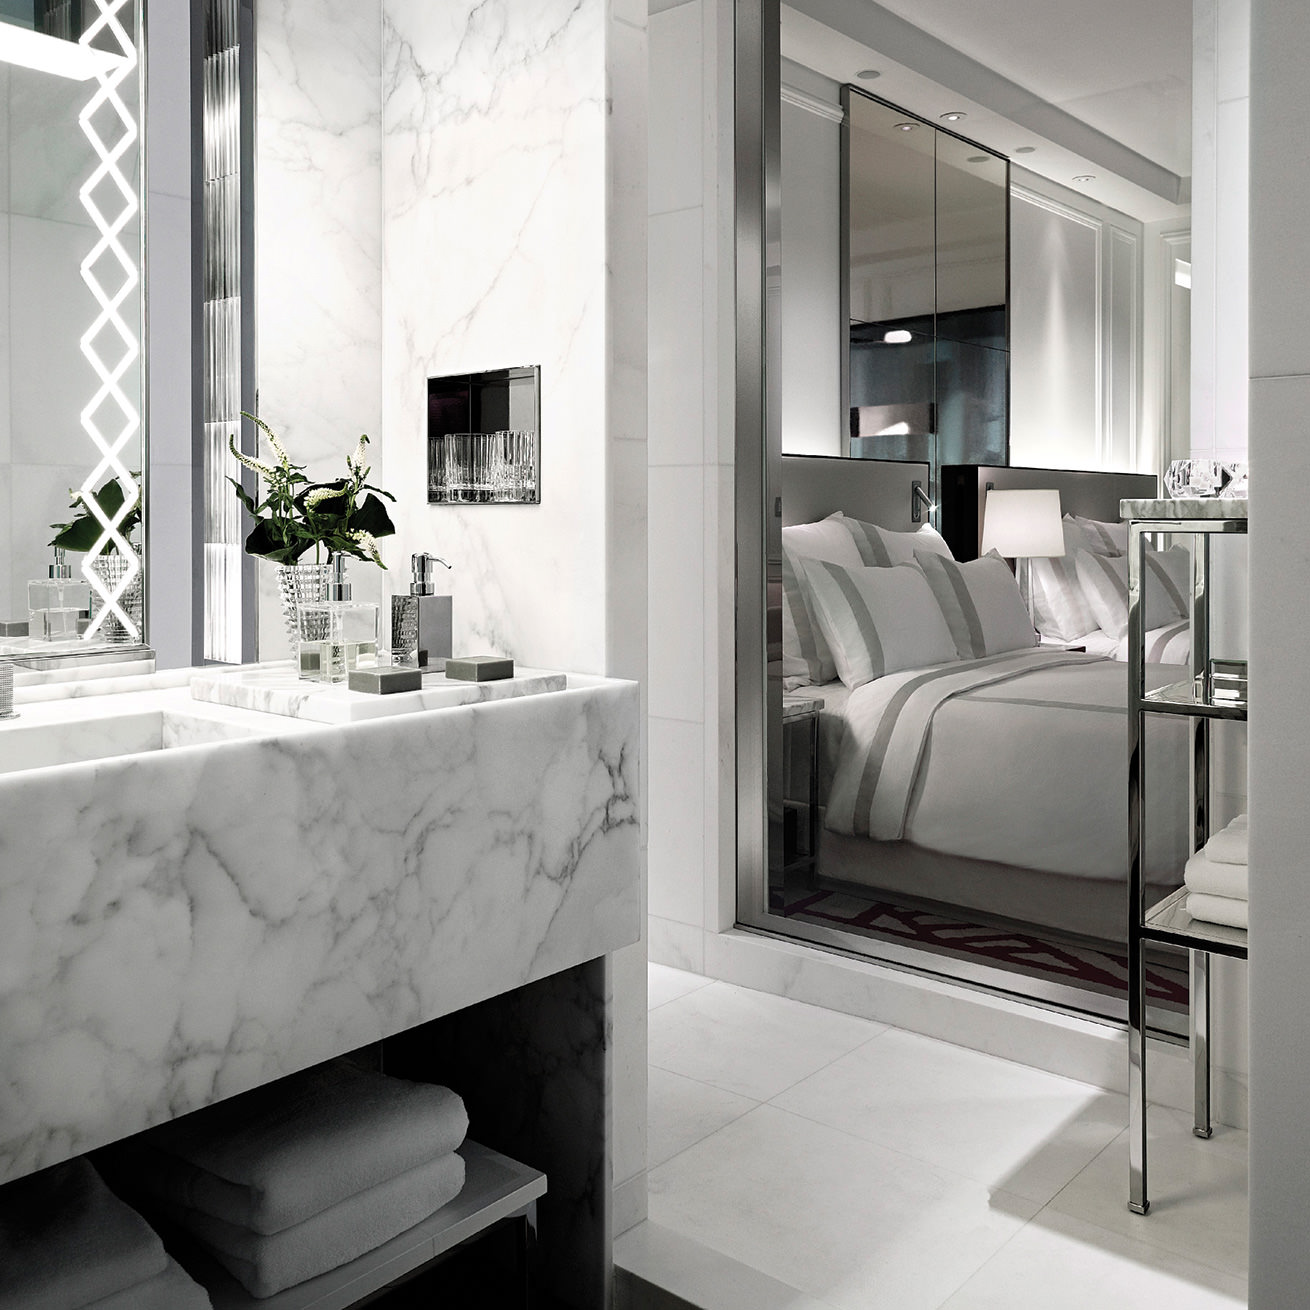 First Baccarat-branded hotel opens in New York